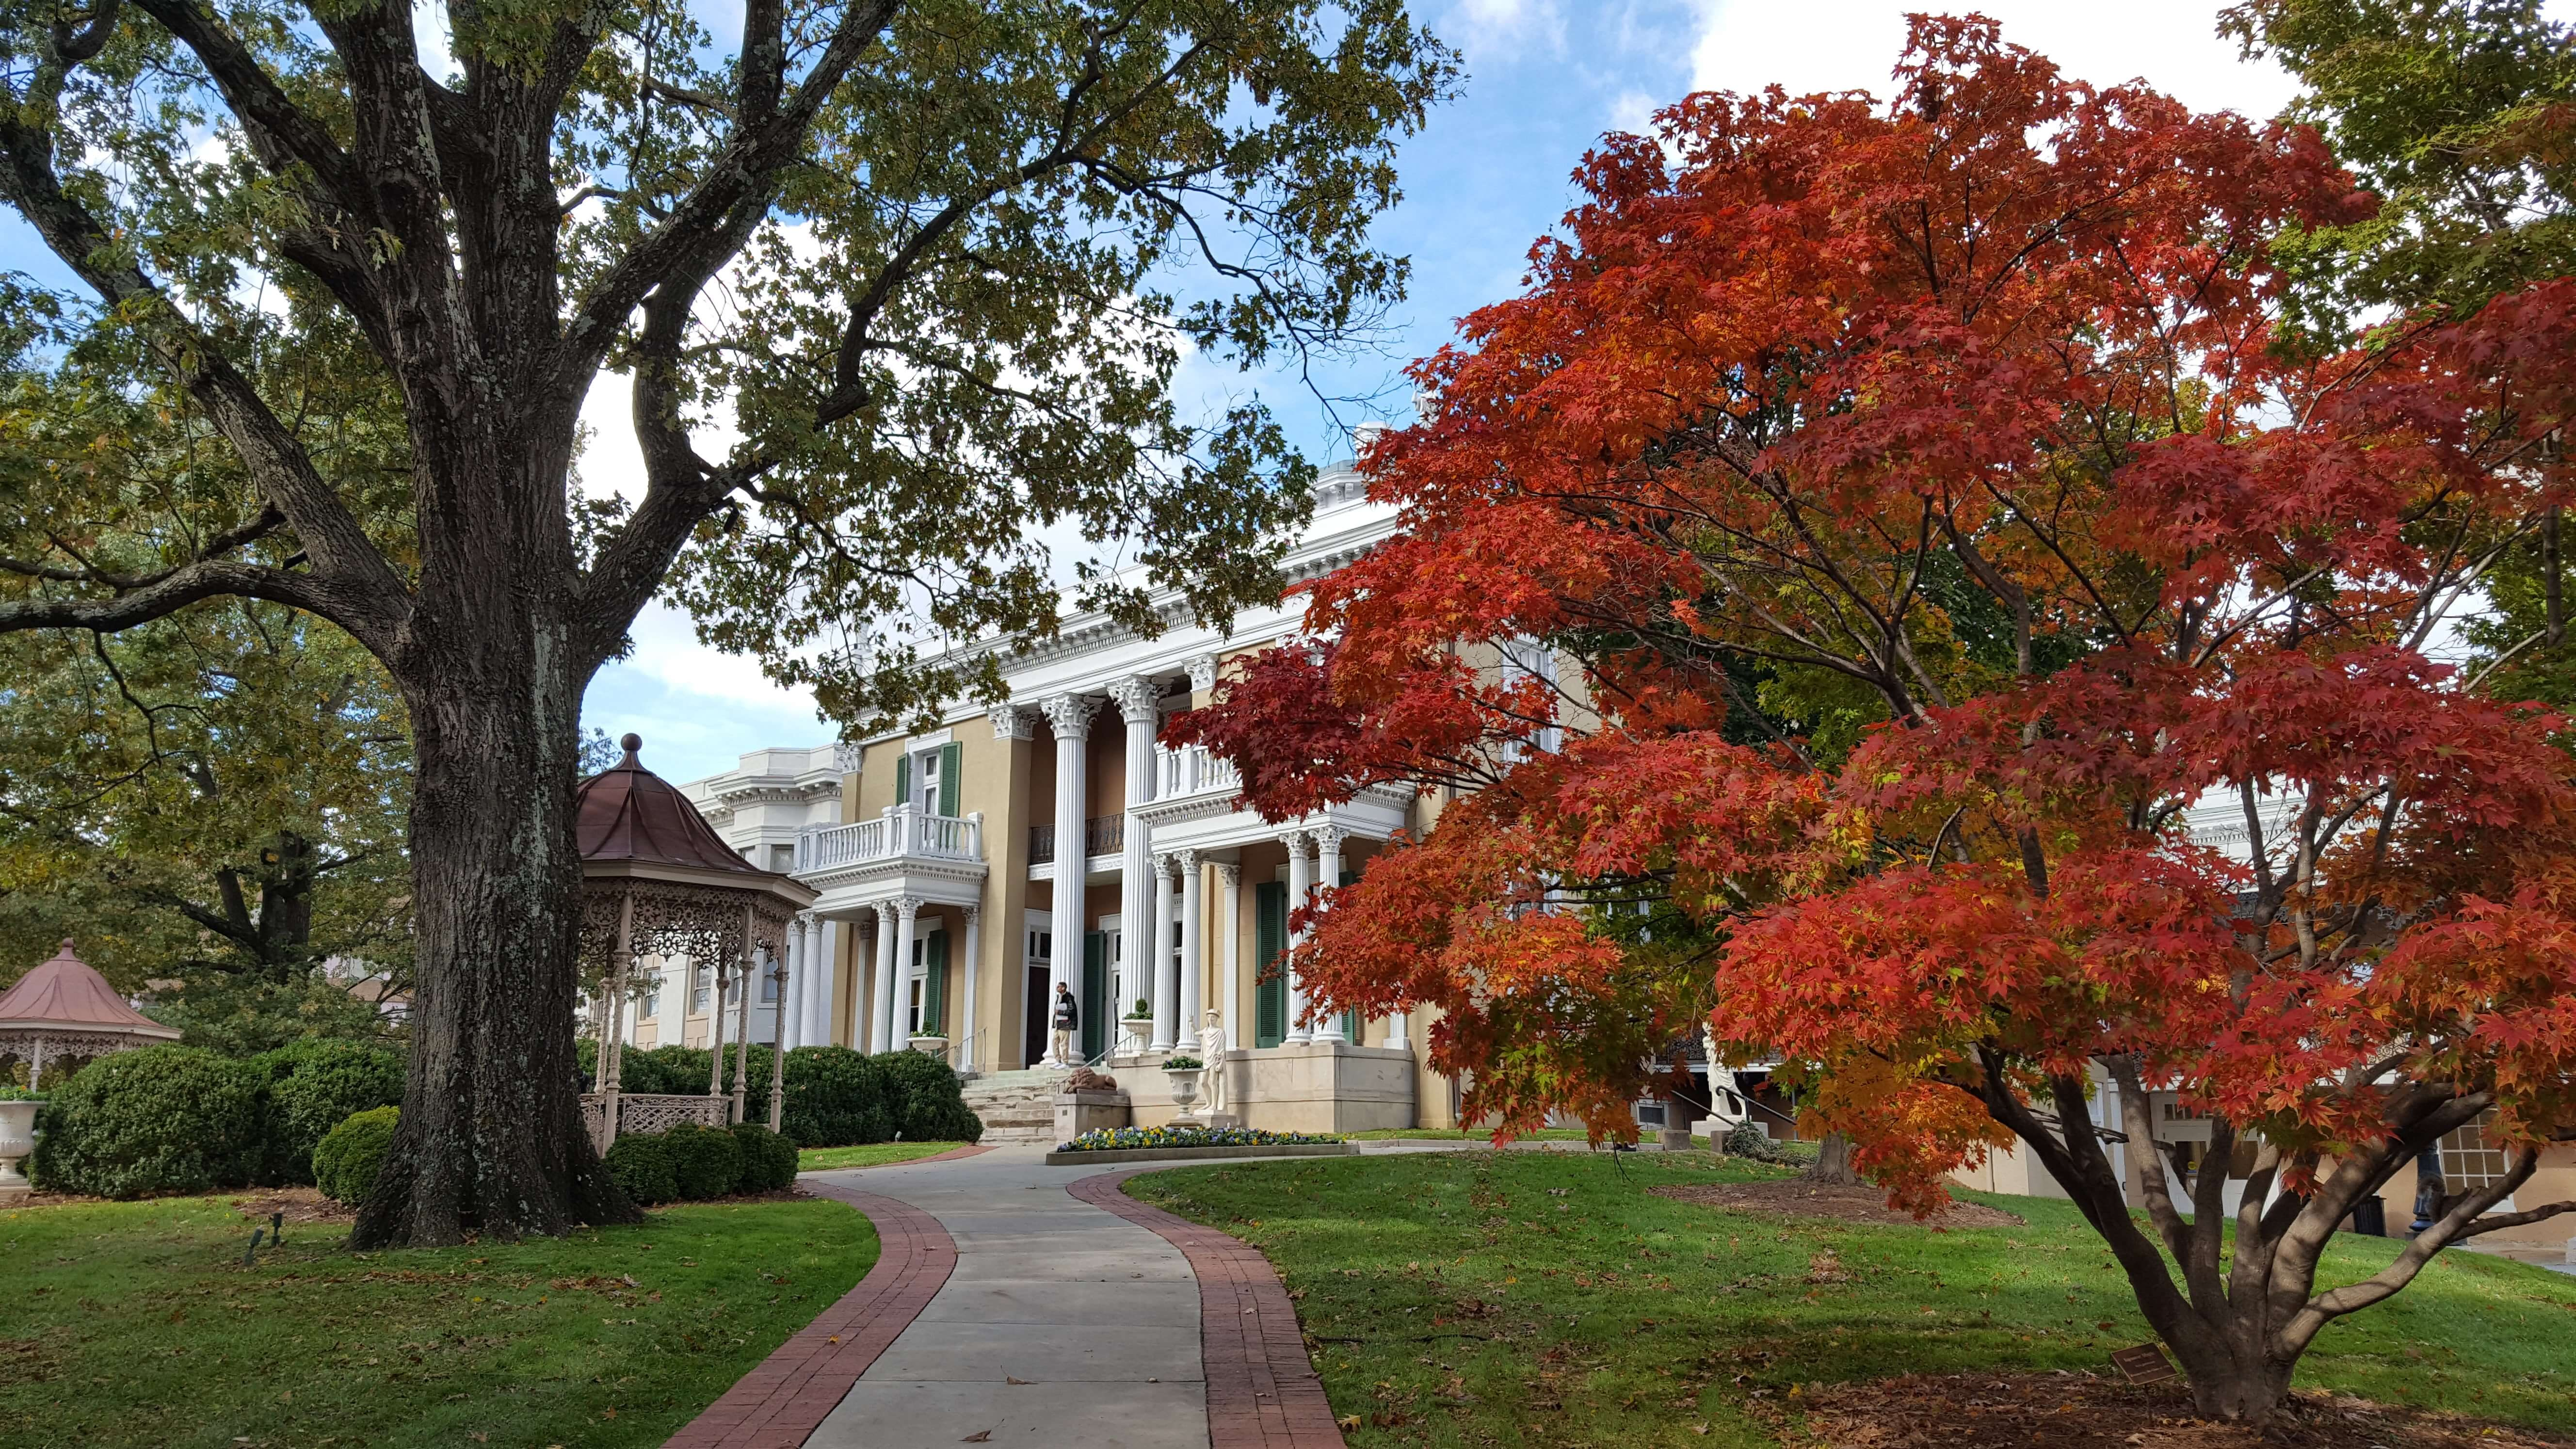 The Belmont Mansion in autumn